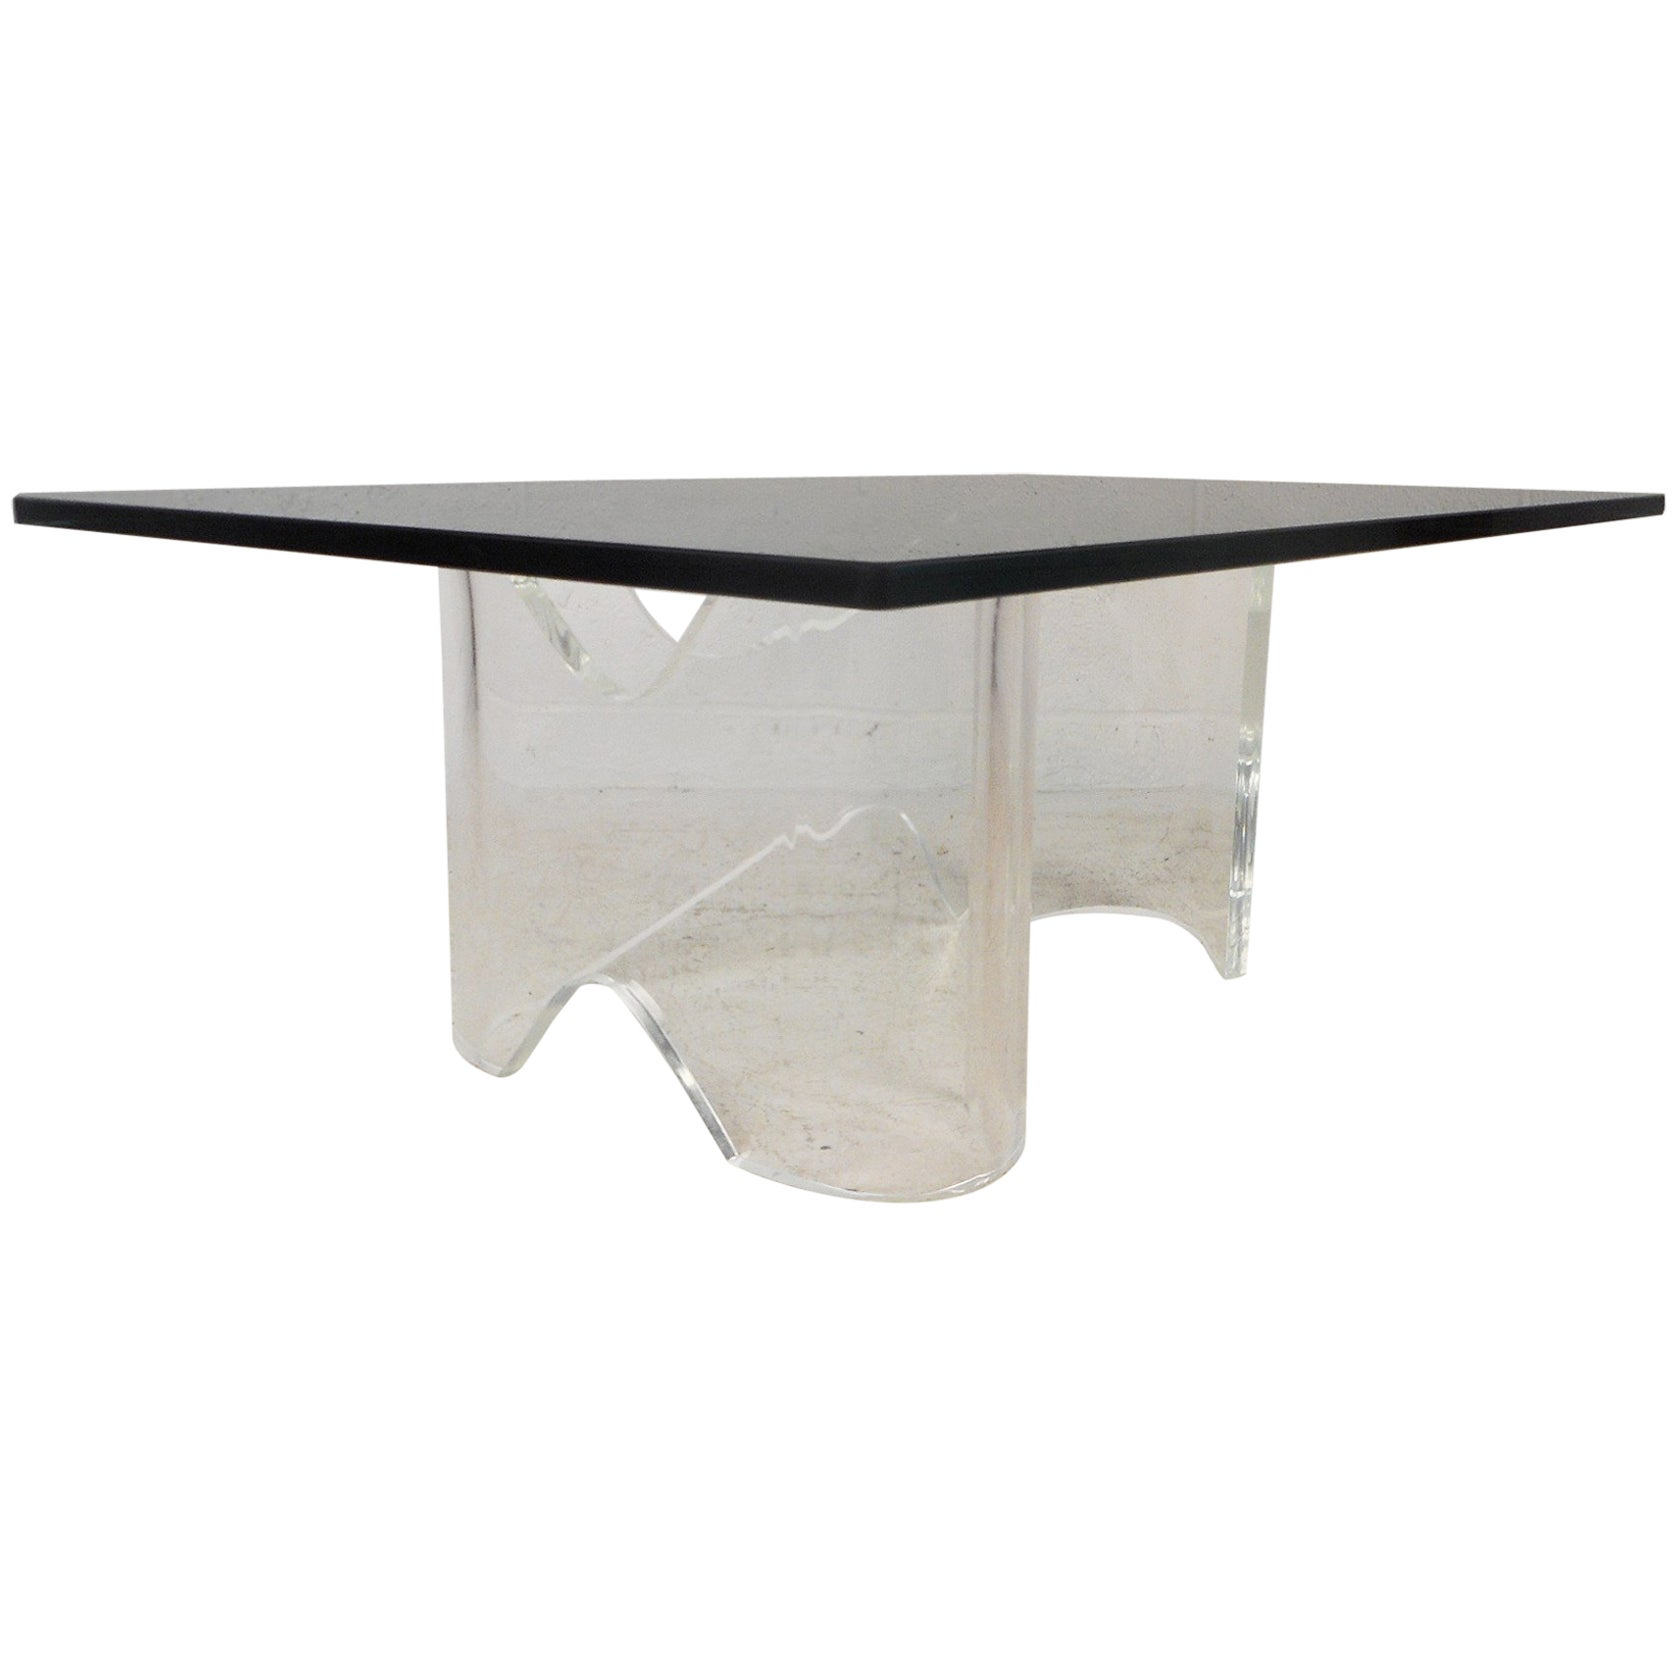 Mid-Century Modern Lucite Coffee Table with a Glass Top